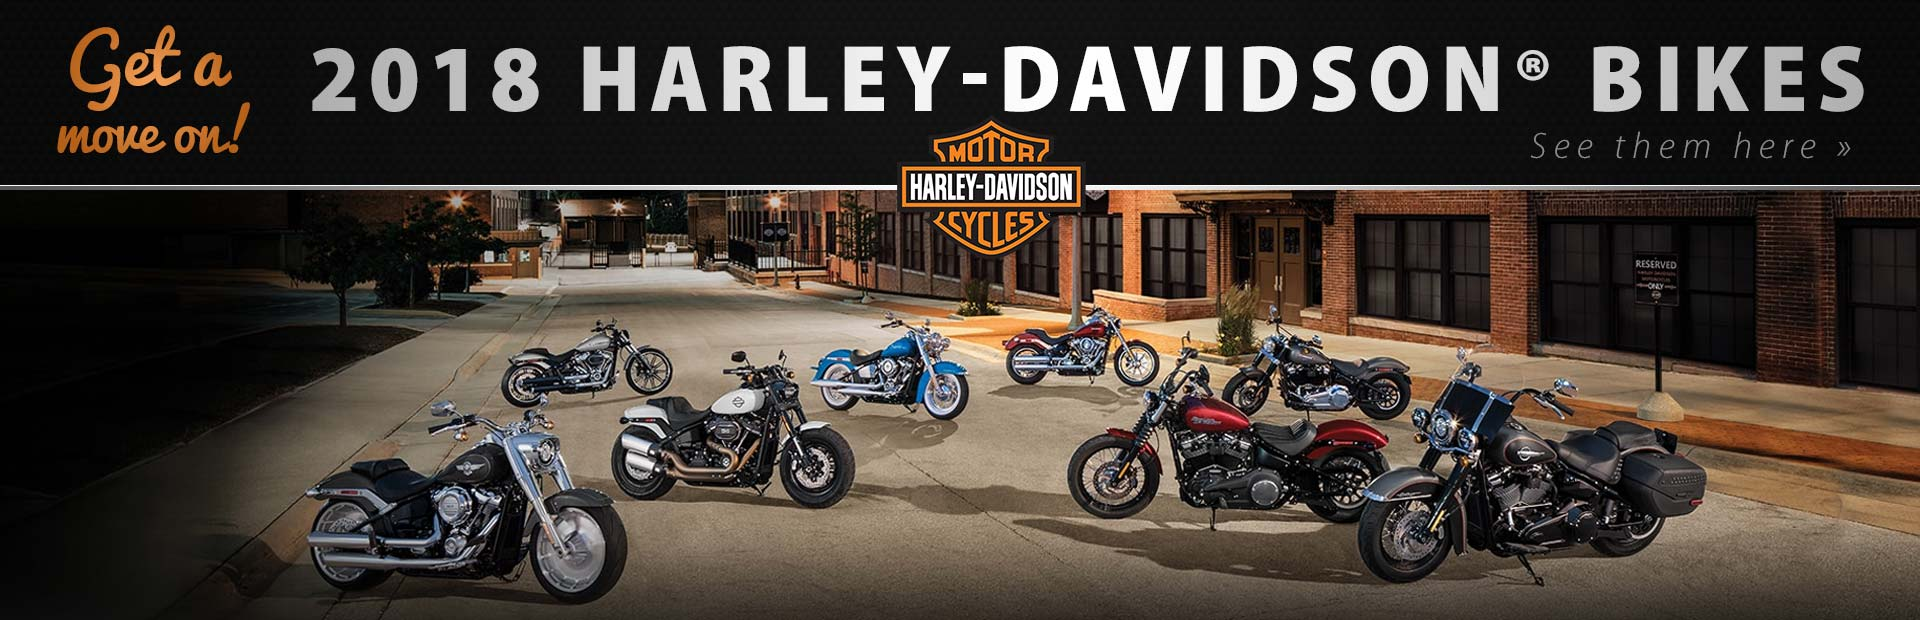 2018 Harley-Davidson® Bikes: Click here to view the models.